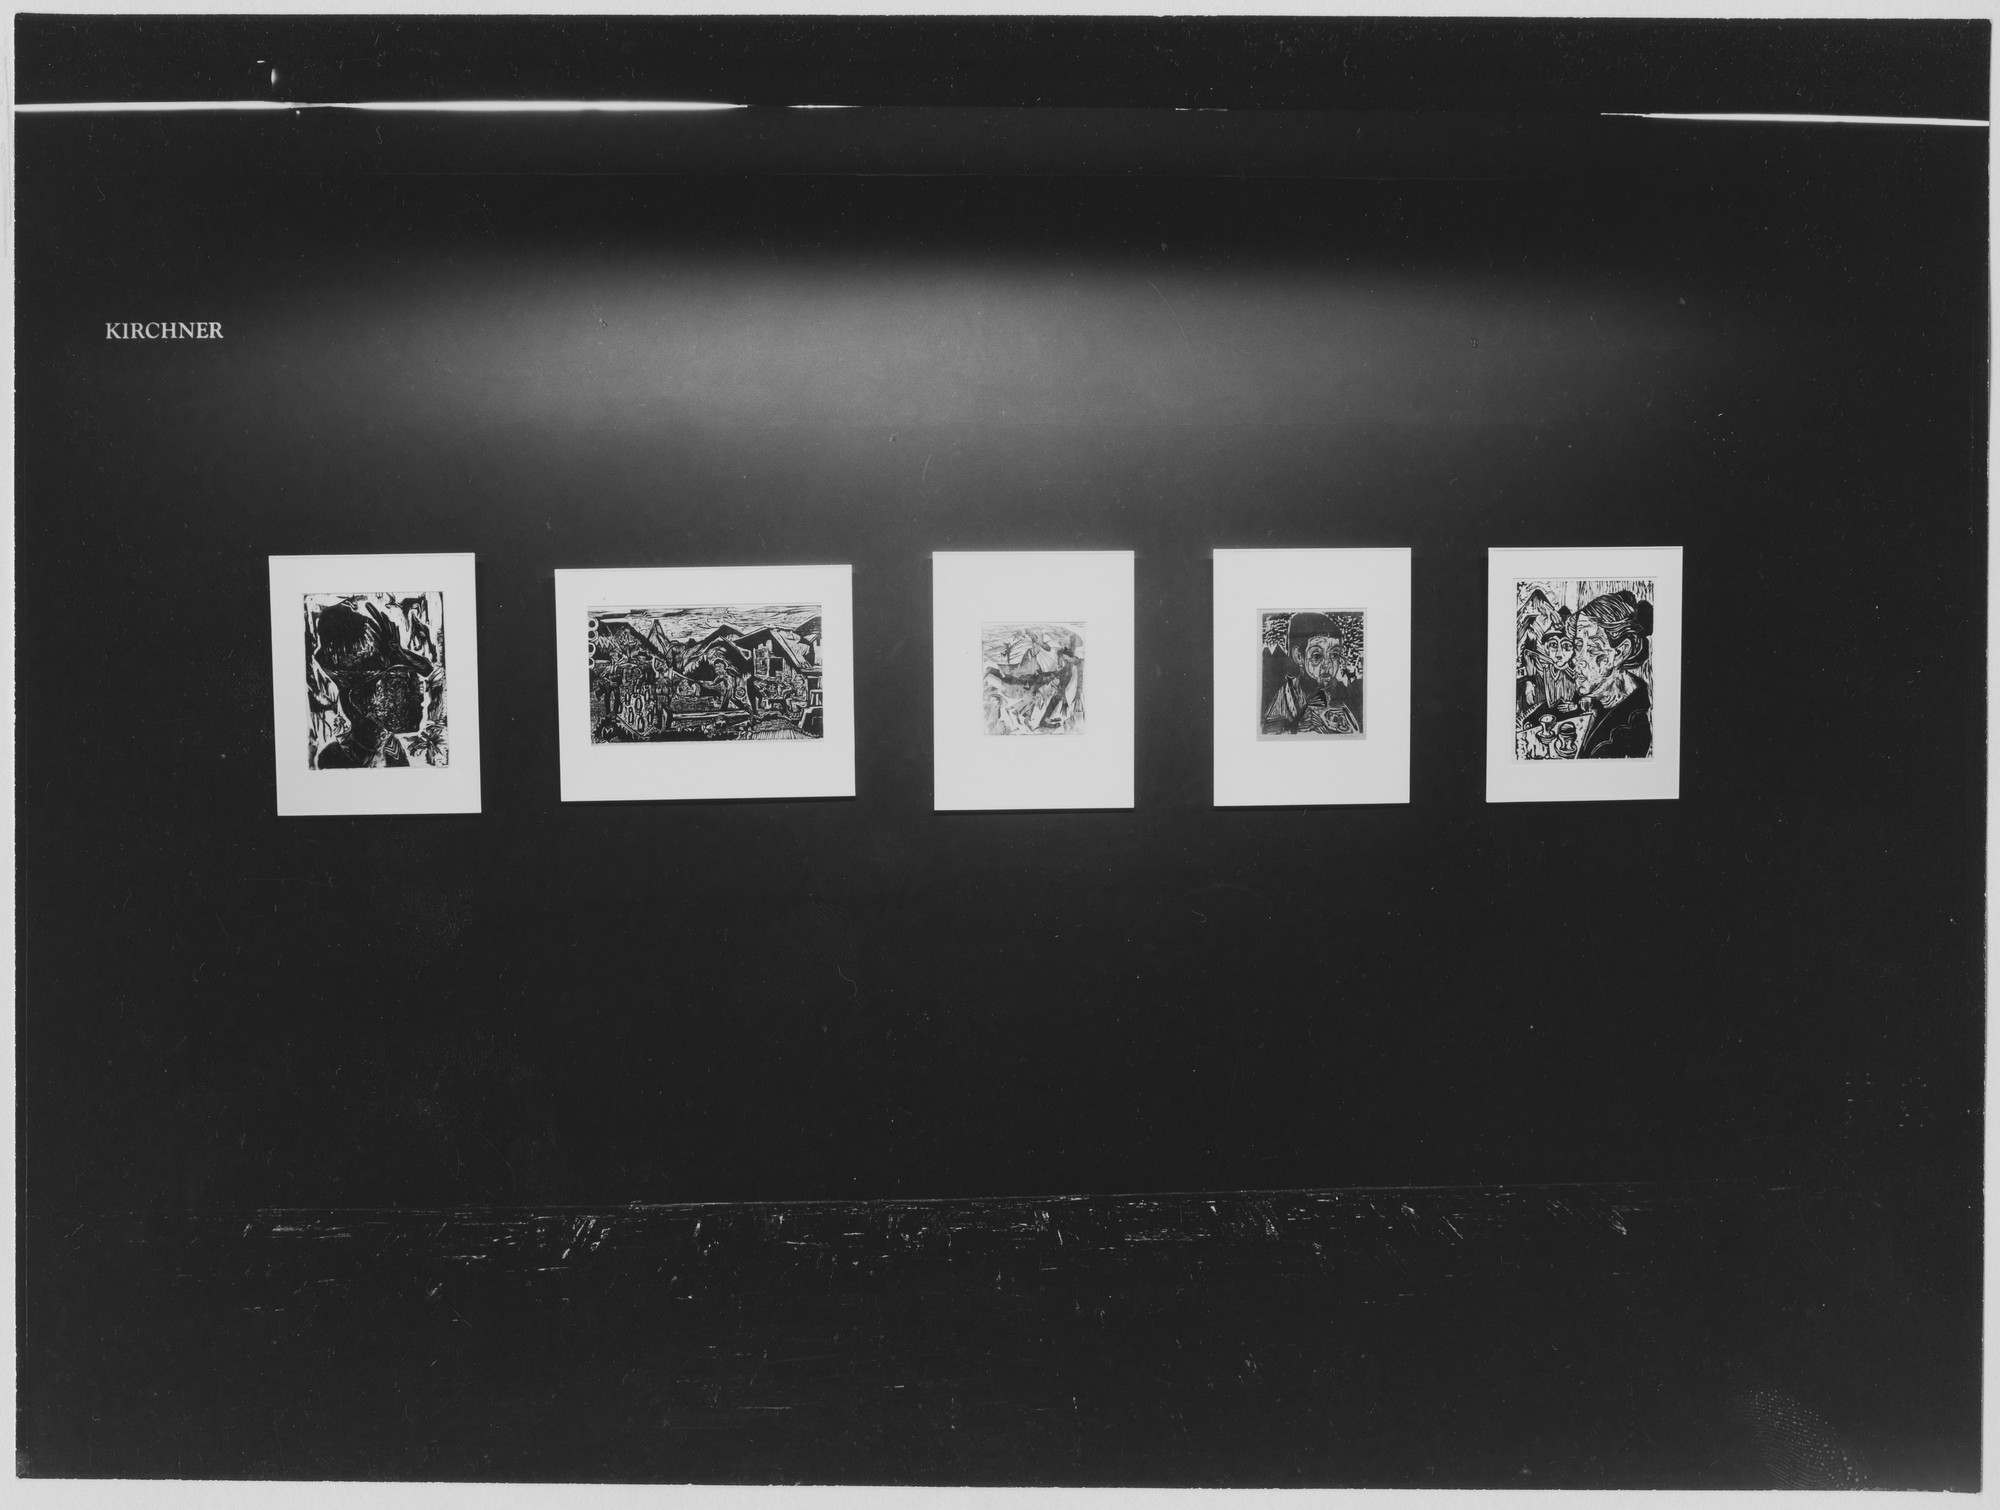 "Installation view of the exhibition, ""Ten European Artists (Prints)."" December 31, 1958–February 23, 1959. Photographic Archive. The Museum of Modern Art Archives, New York. IN638.1. Photograph by Soichi Sunami."